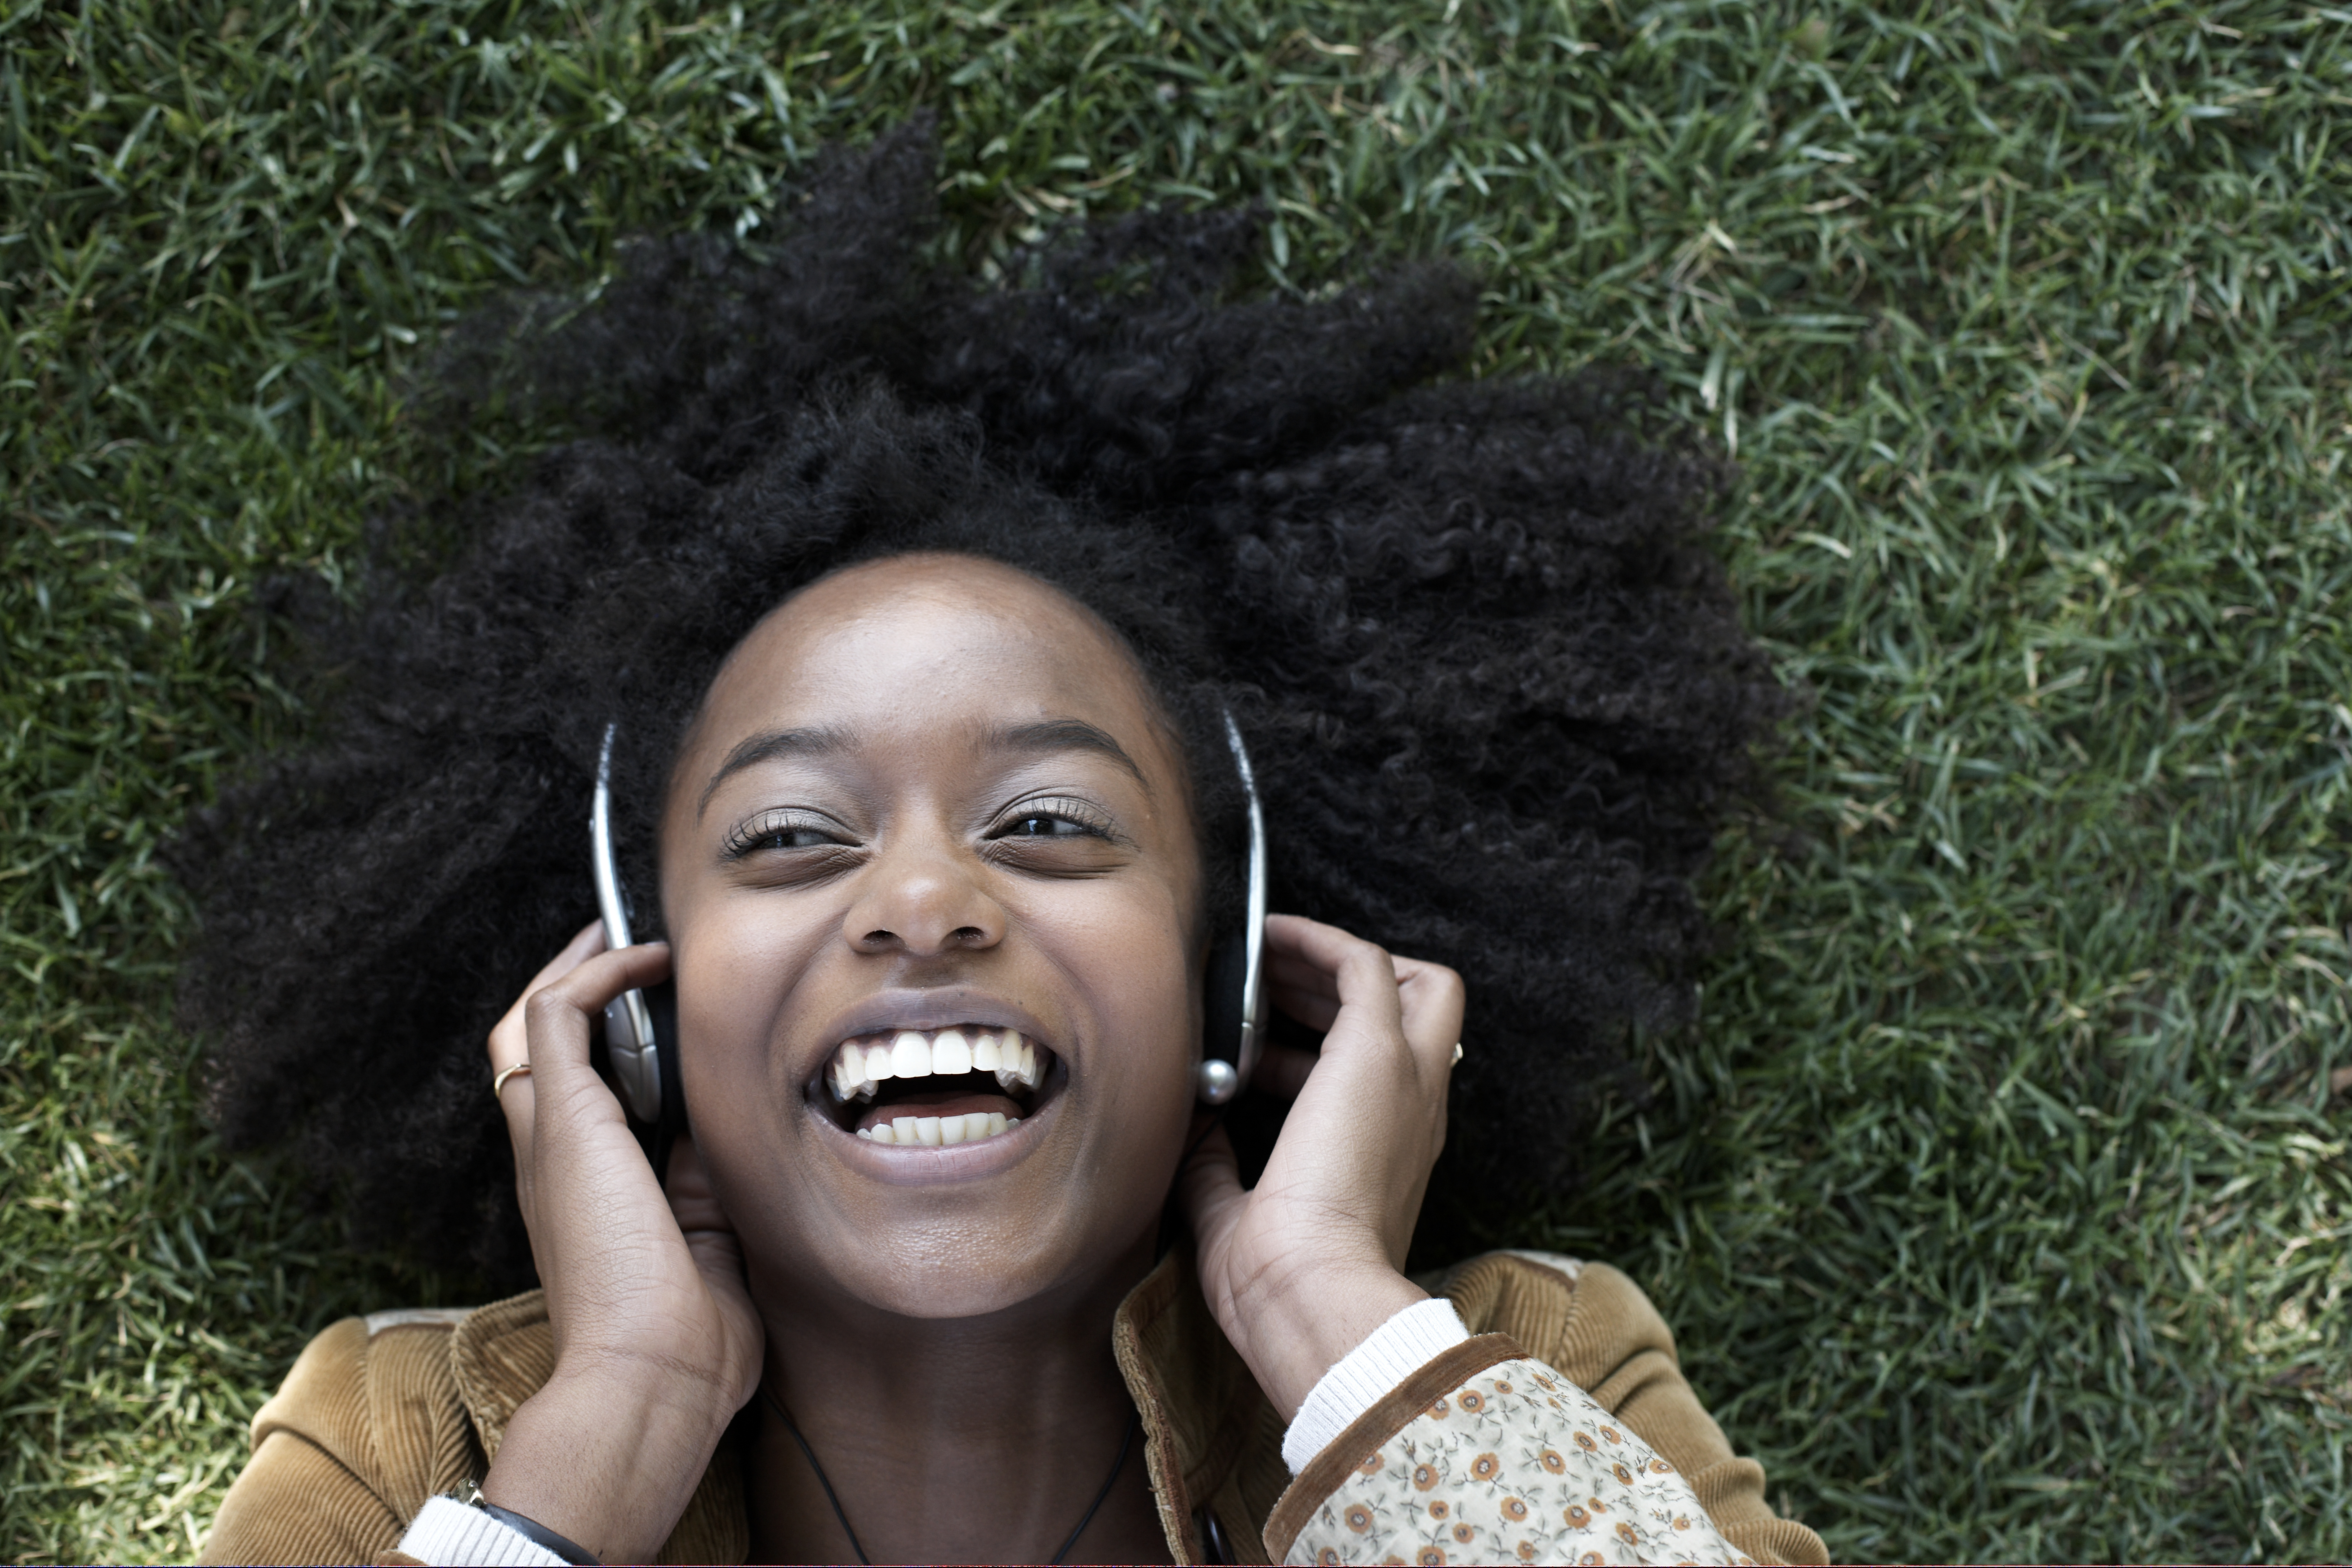 More U.S. citizens listen to playlists than albums, according to a new study by consumer insight group LOOP (file photo)